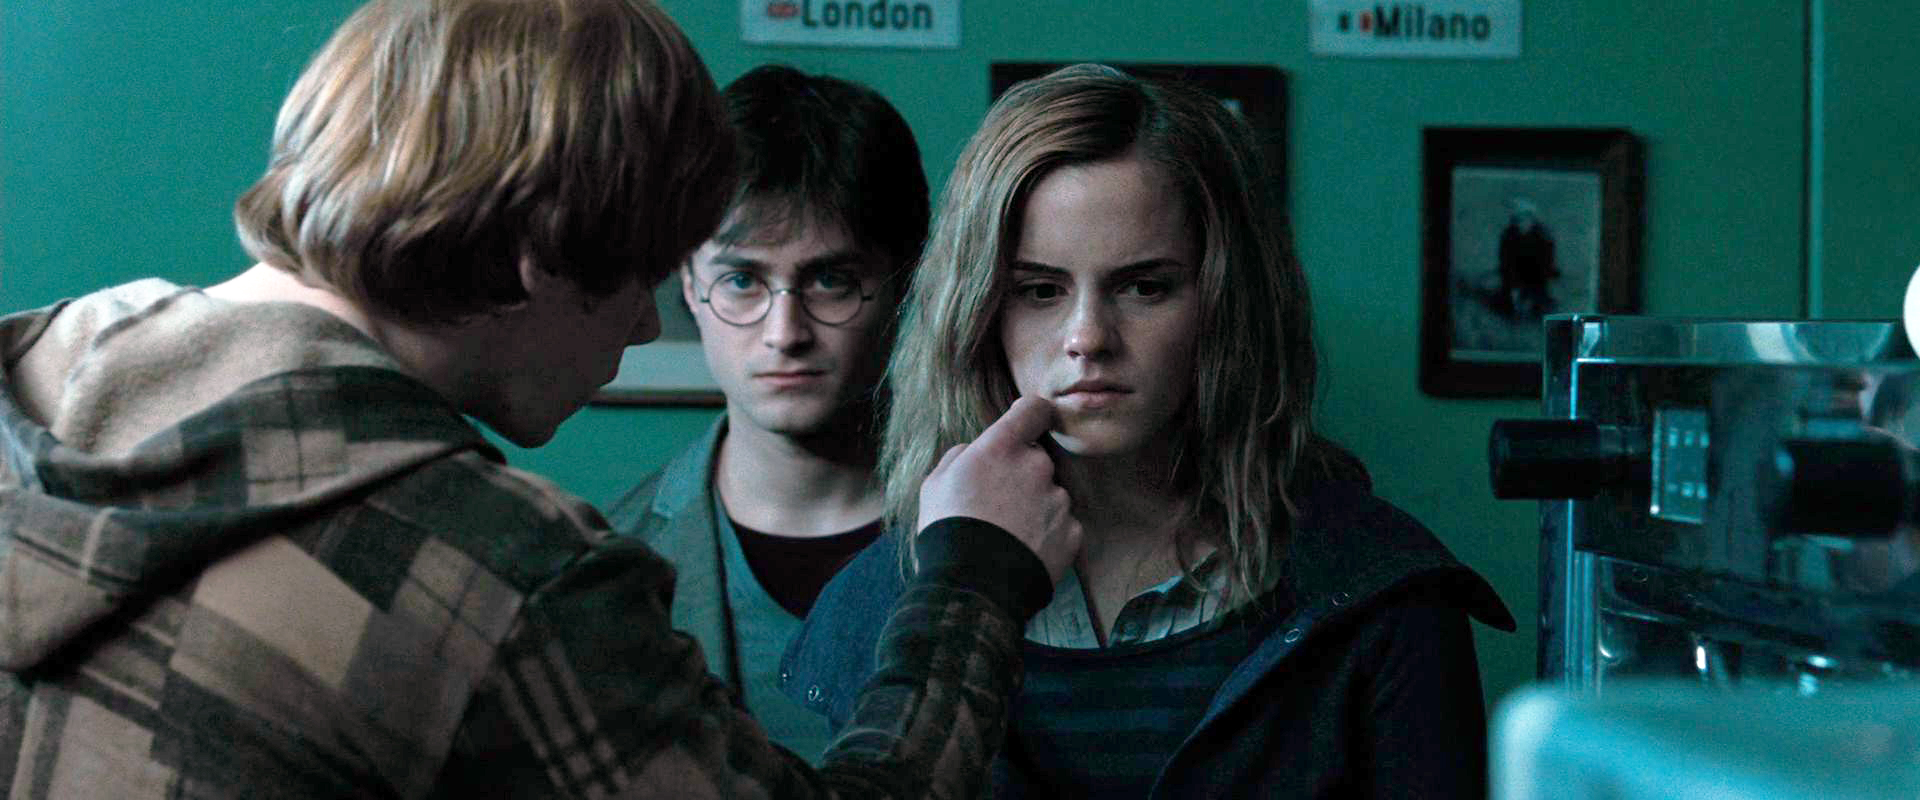 Image dh1 ron weasley asking hermione to use memory - Harry potter hermione granger ron weasley ...